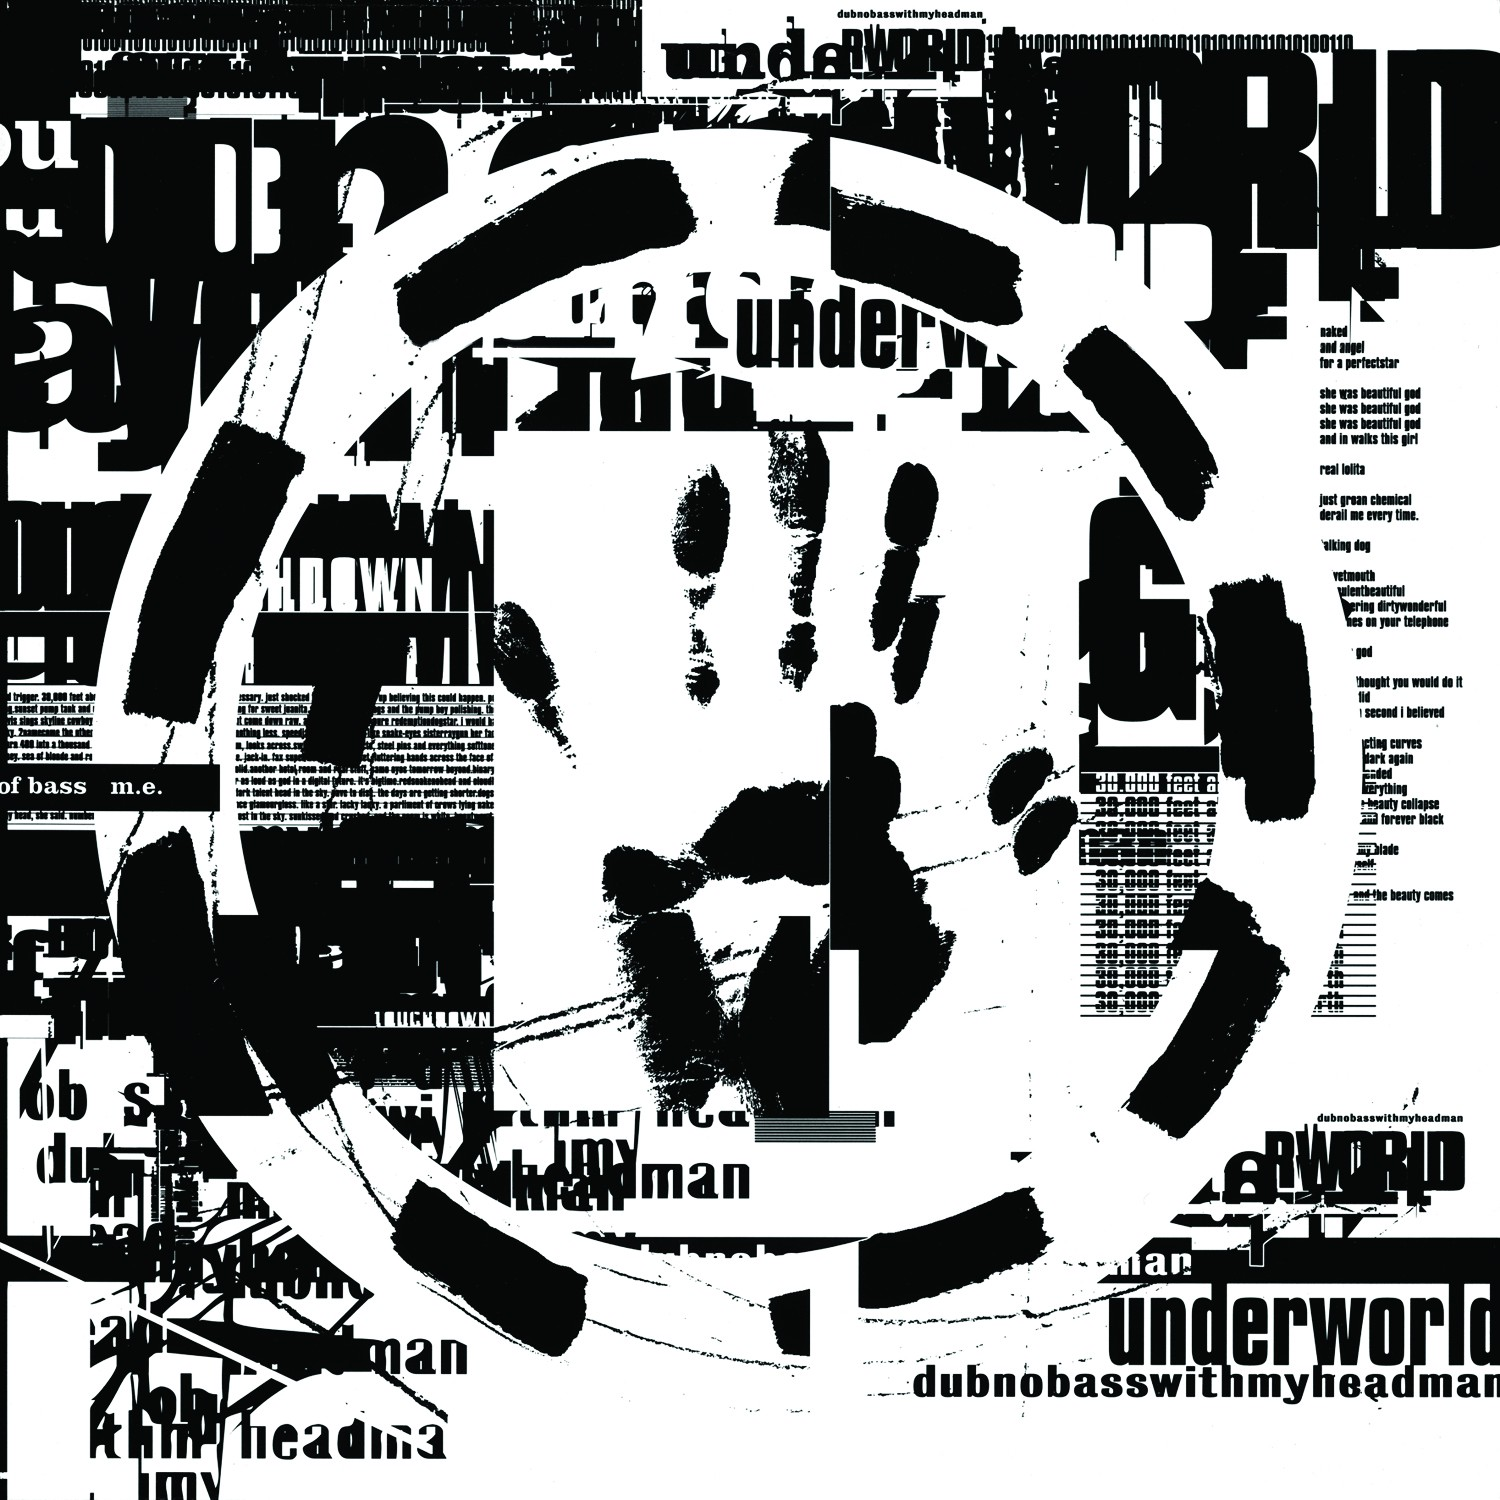 On a razors edge the story behind underworlds dirty epic the album cover to dubnobasswithmyheadman vinyl release by tomato 1993 stopboris Image collections